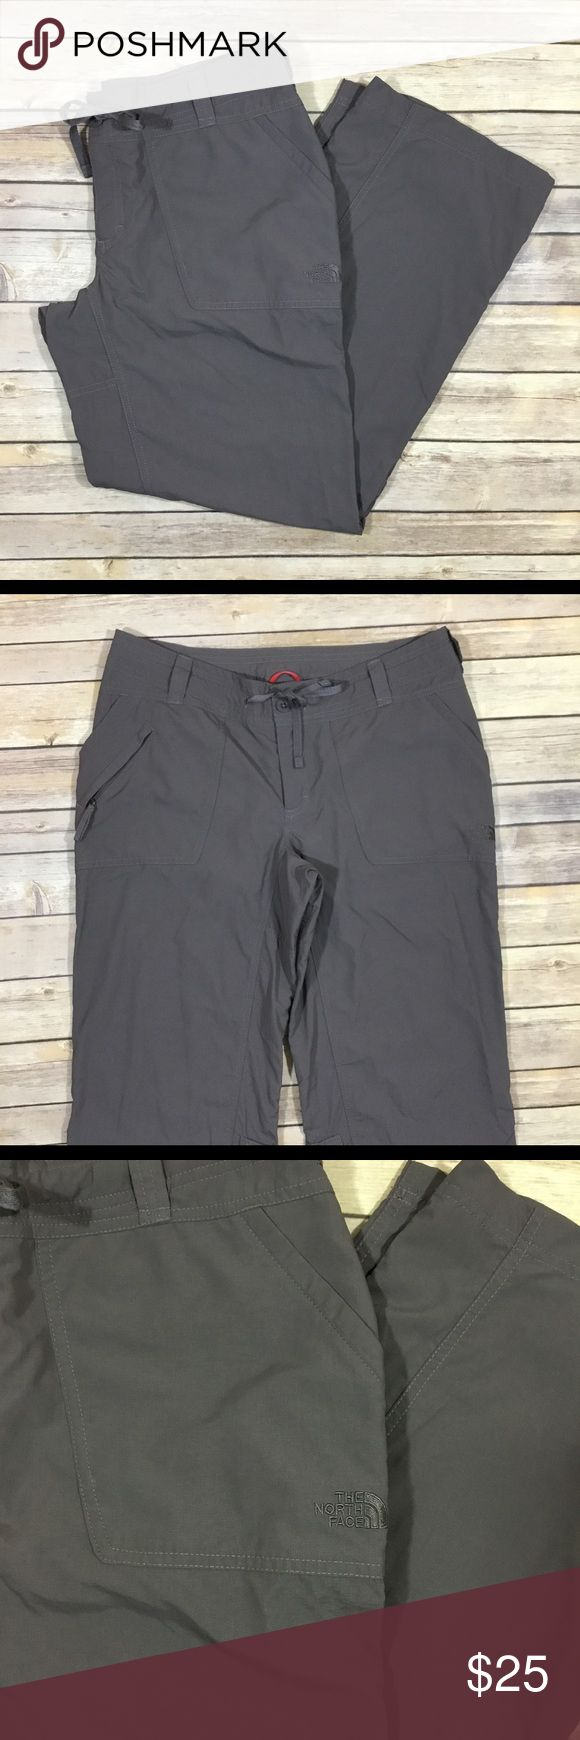 "Women's The North Face Athletic Outdoor Pants 833 Women's The North Face Athletic Hiking/Camping Outdoor Pants.  GUC without flaws.  Size 10 Short.  100% Nylon.  Waist - 32"" Hips - 41"" Rise - 8"" Inseam - 29"" North Face Pants Track Pants & Joggers"